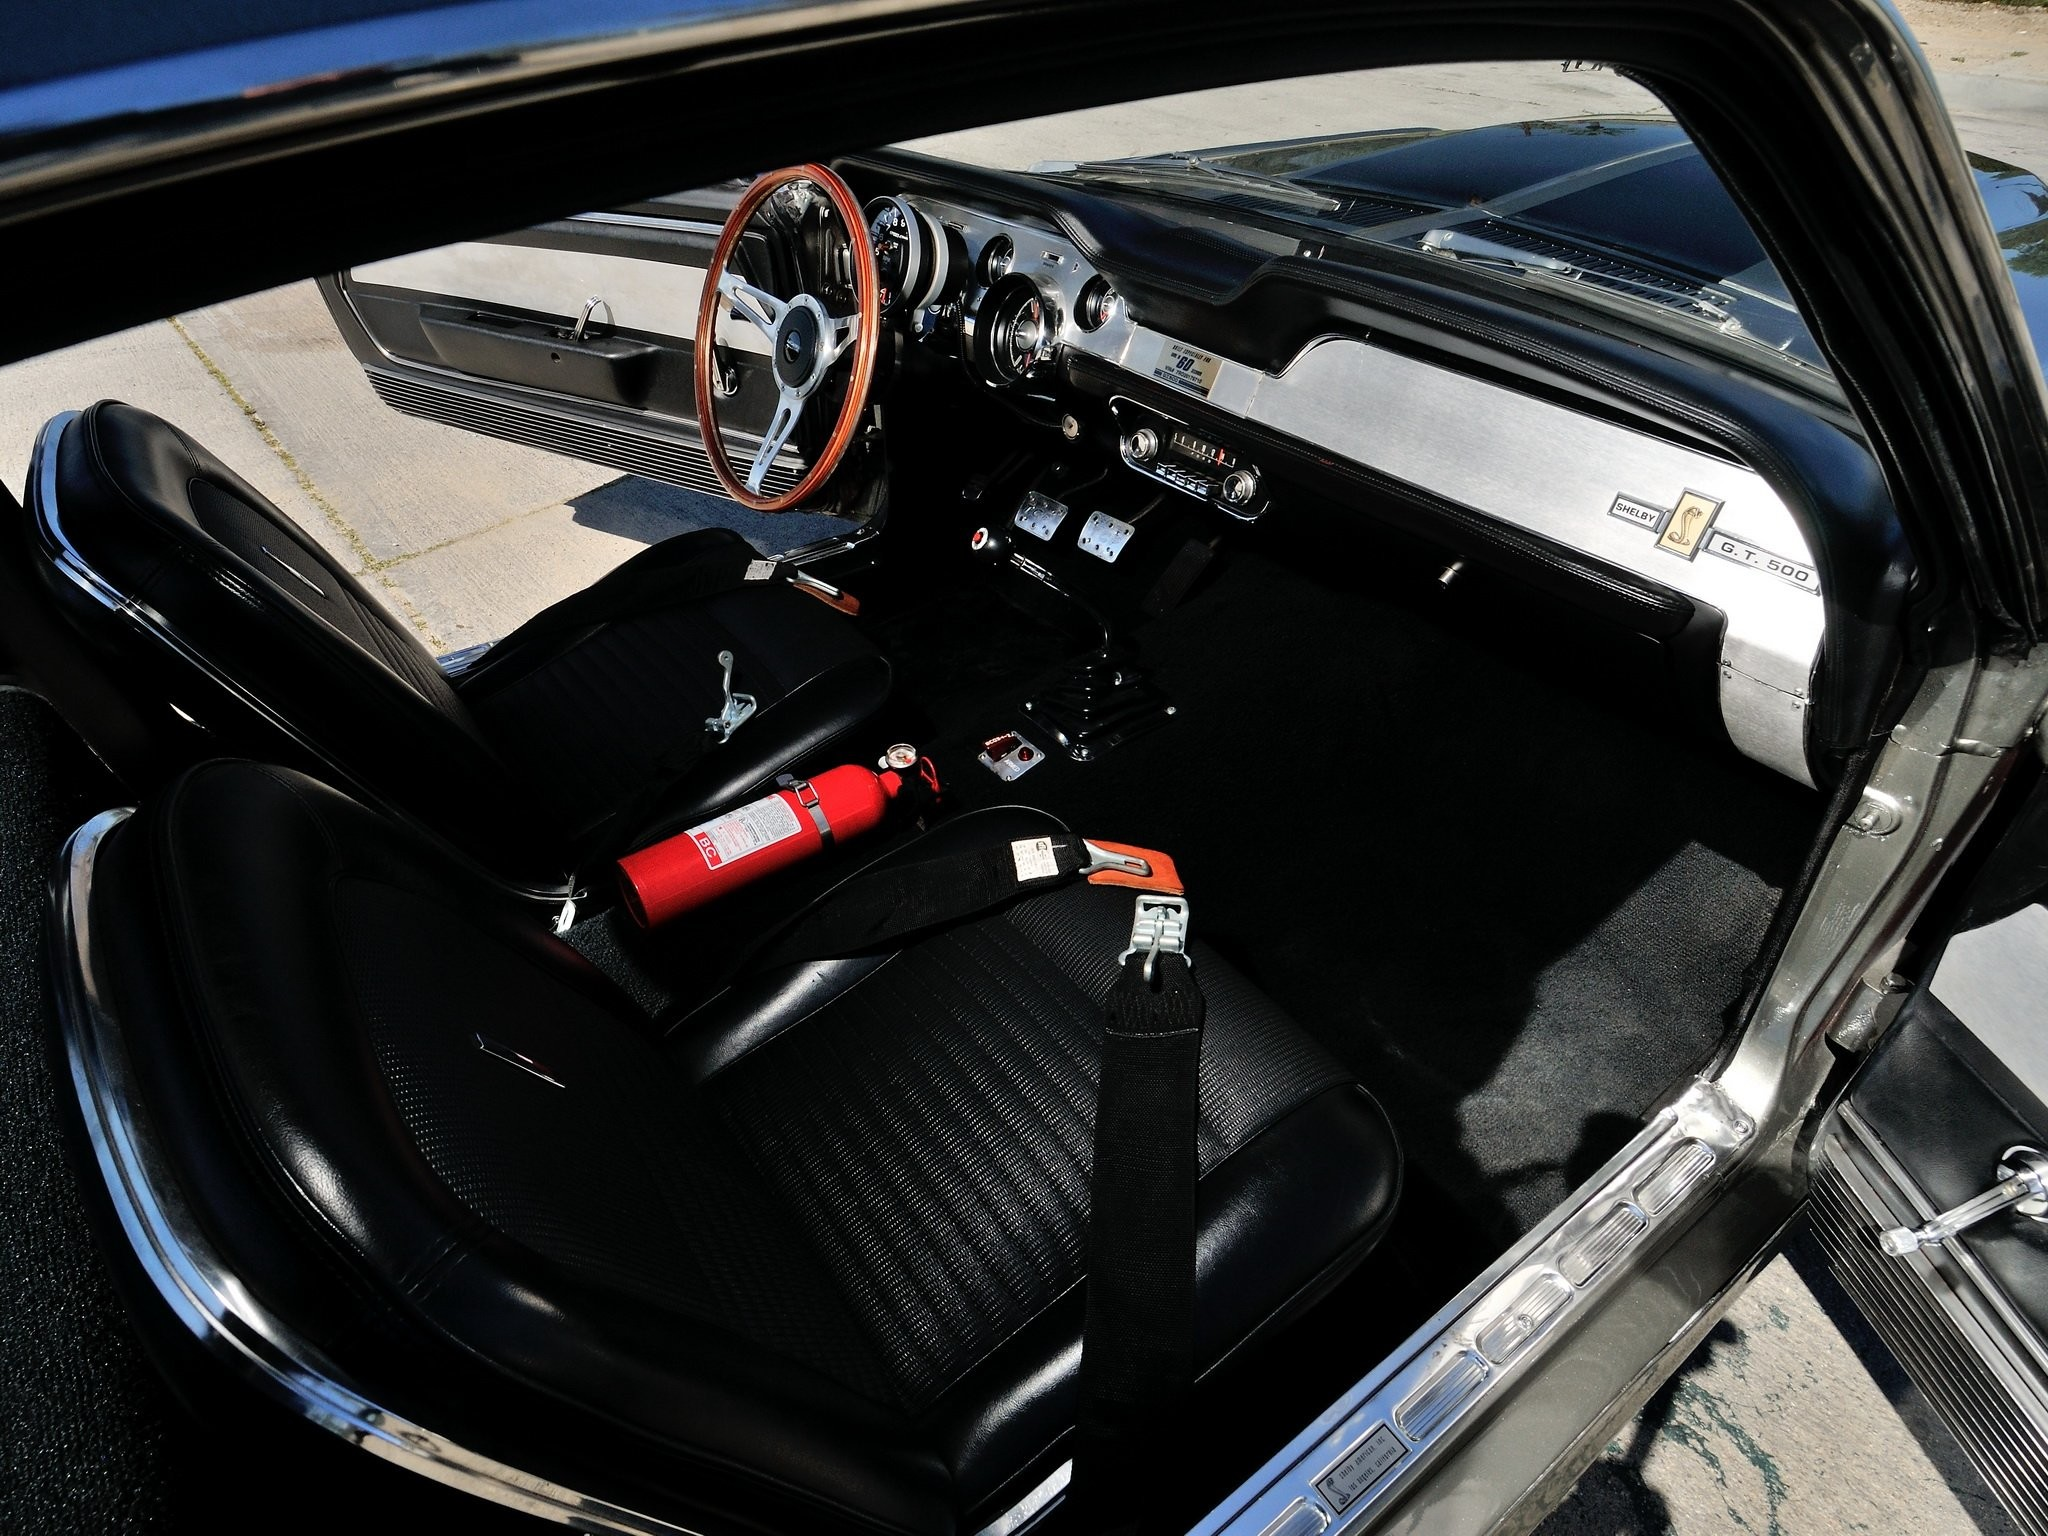 1967 Ford Mustang Shelby Cobra GT500 Eleanor hot rod rods muscle classic  interior f wallpaper | | 249730 | WallpaperUP